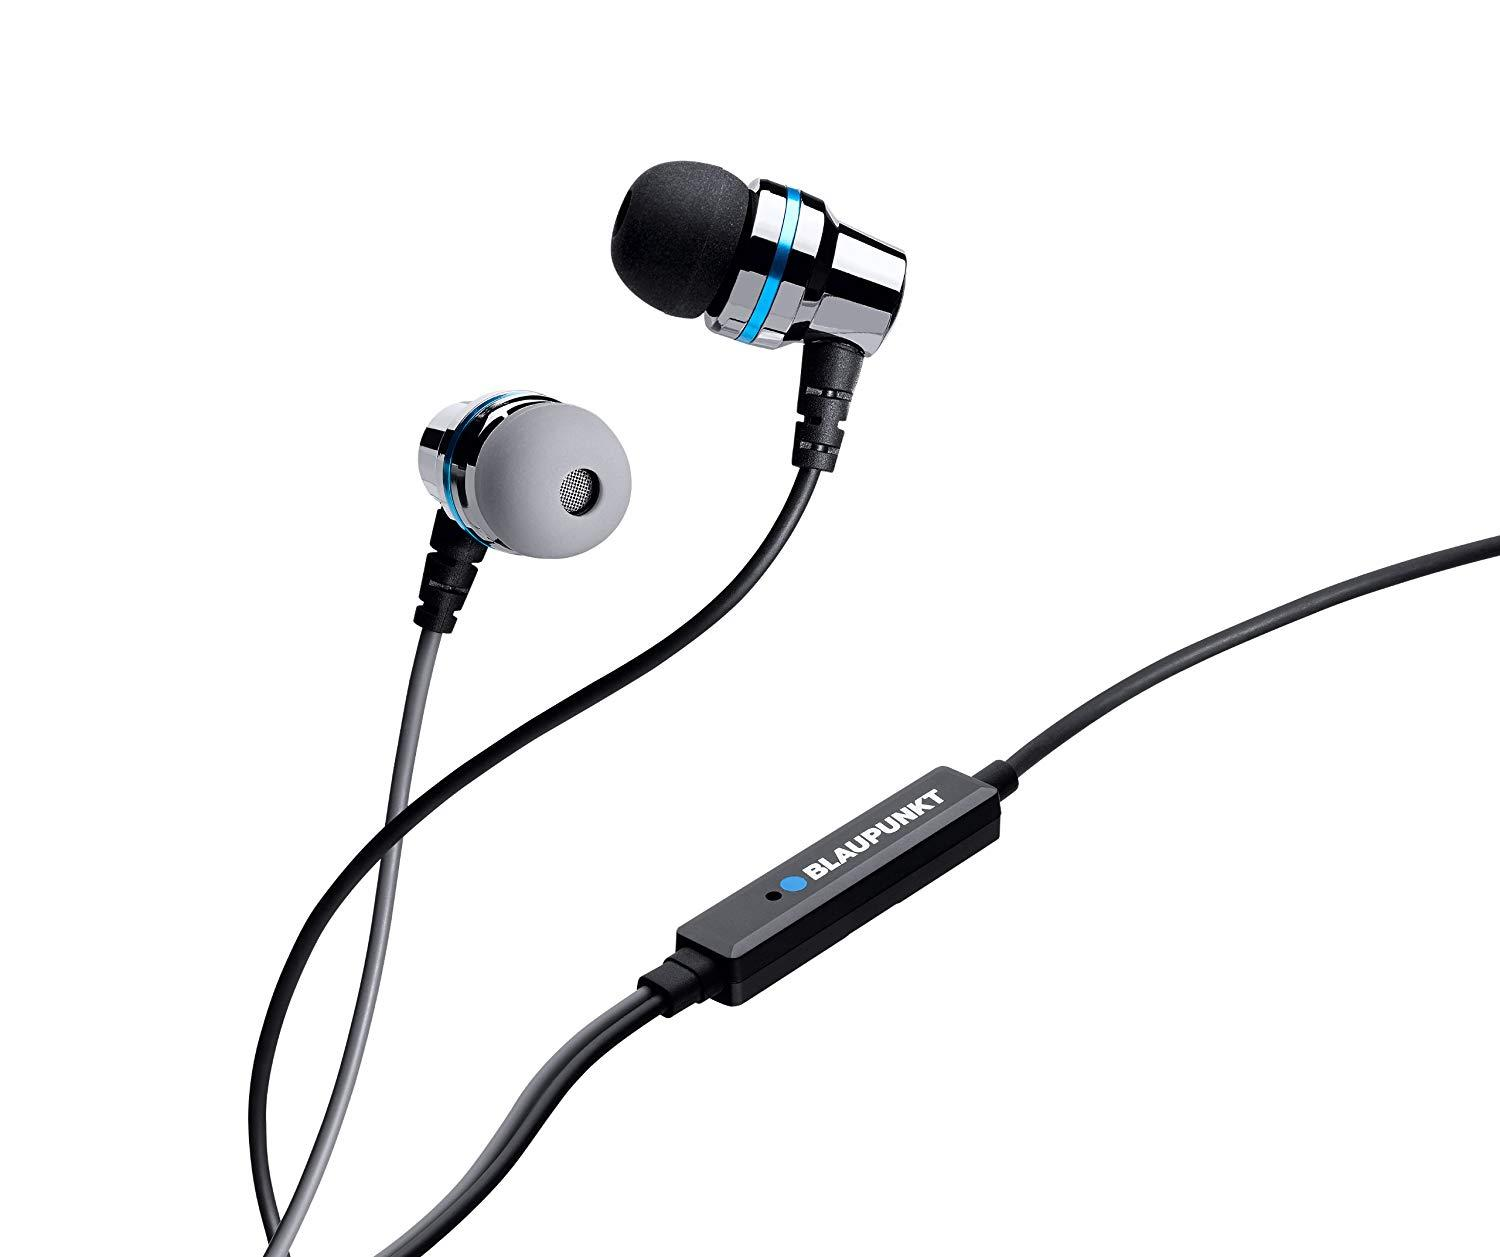 543cd255de0 Blaupunkt Philippines: Blaupunkt price list - Earphones, Headphones ...